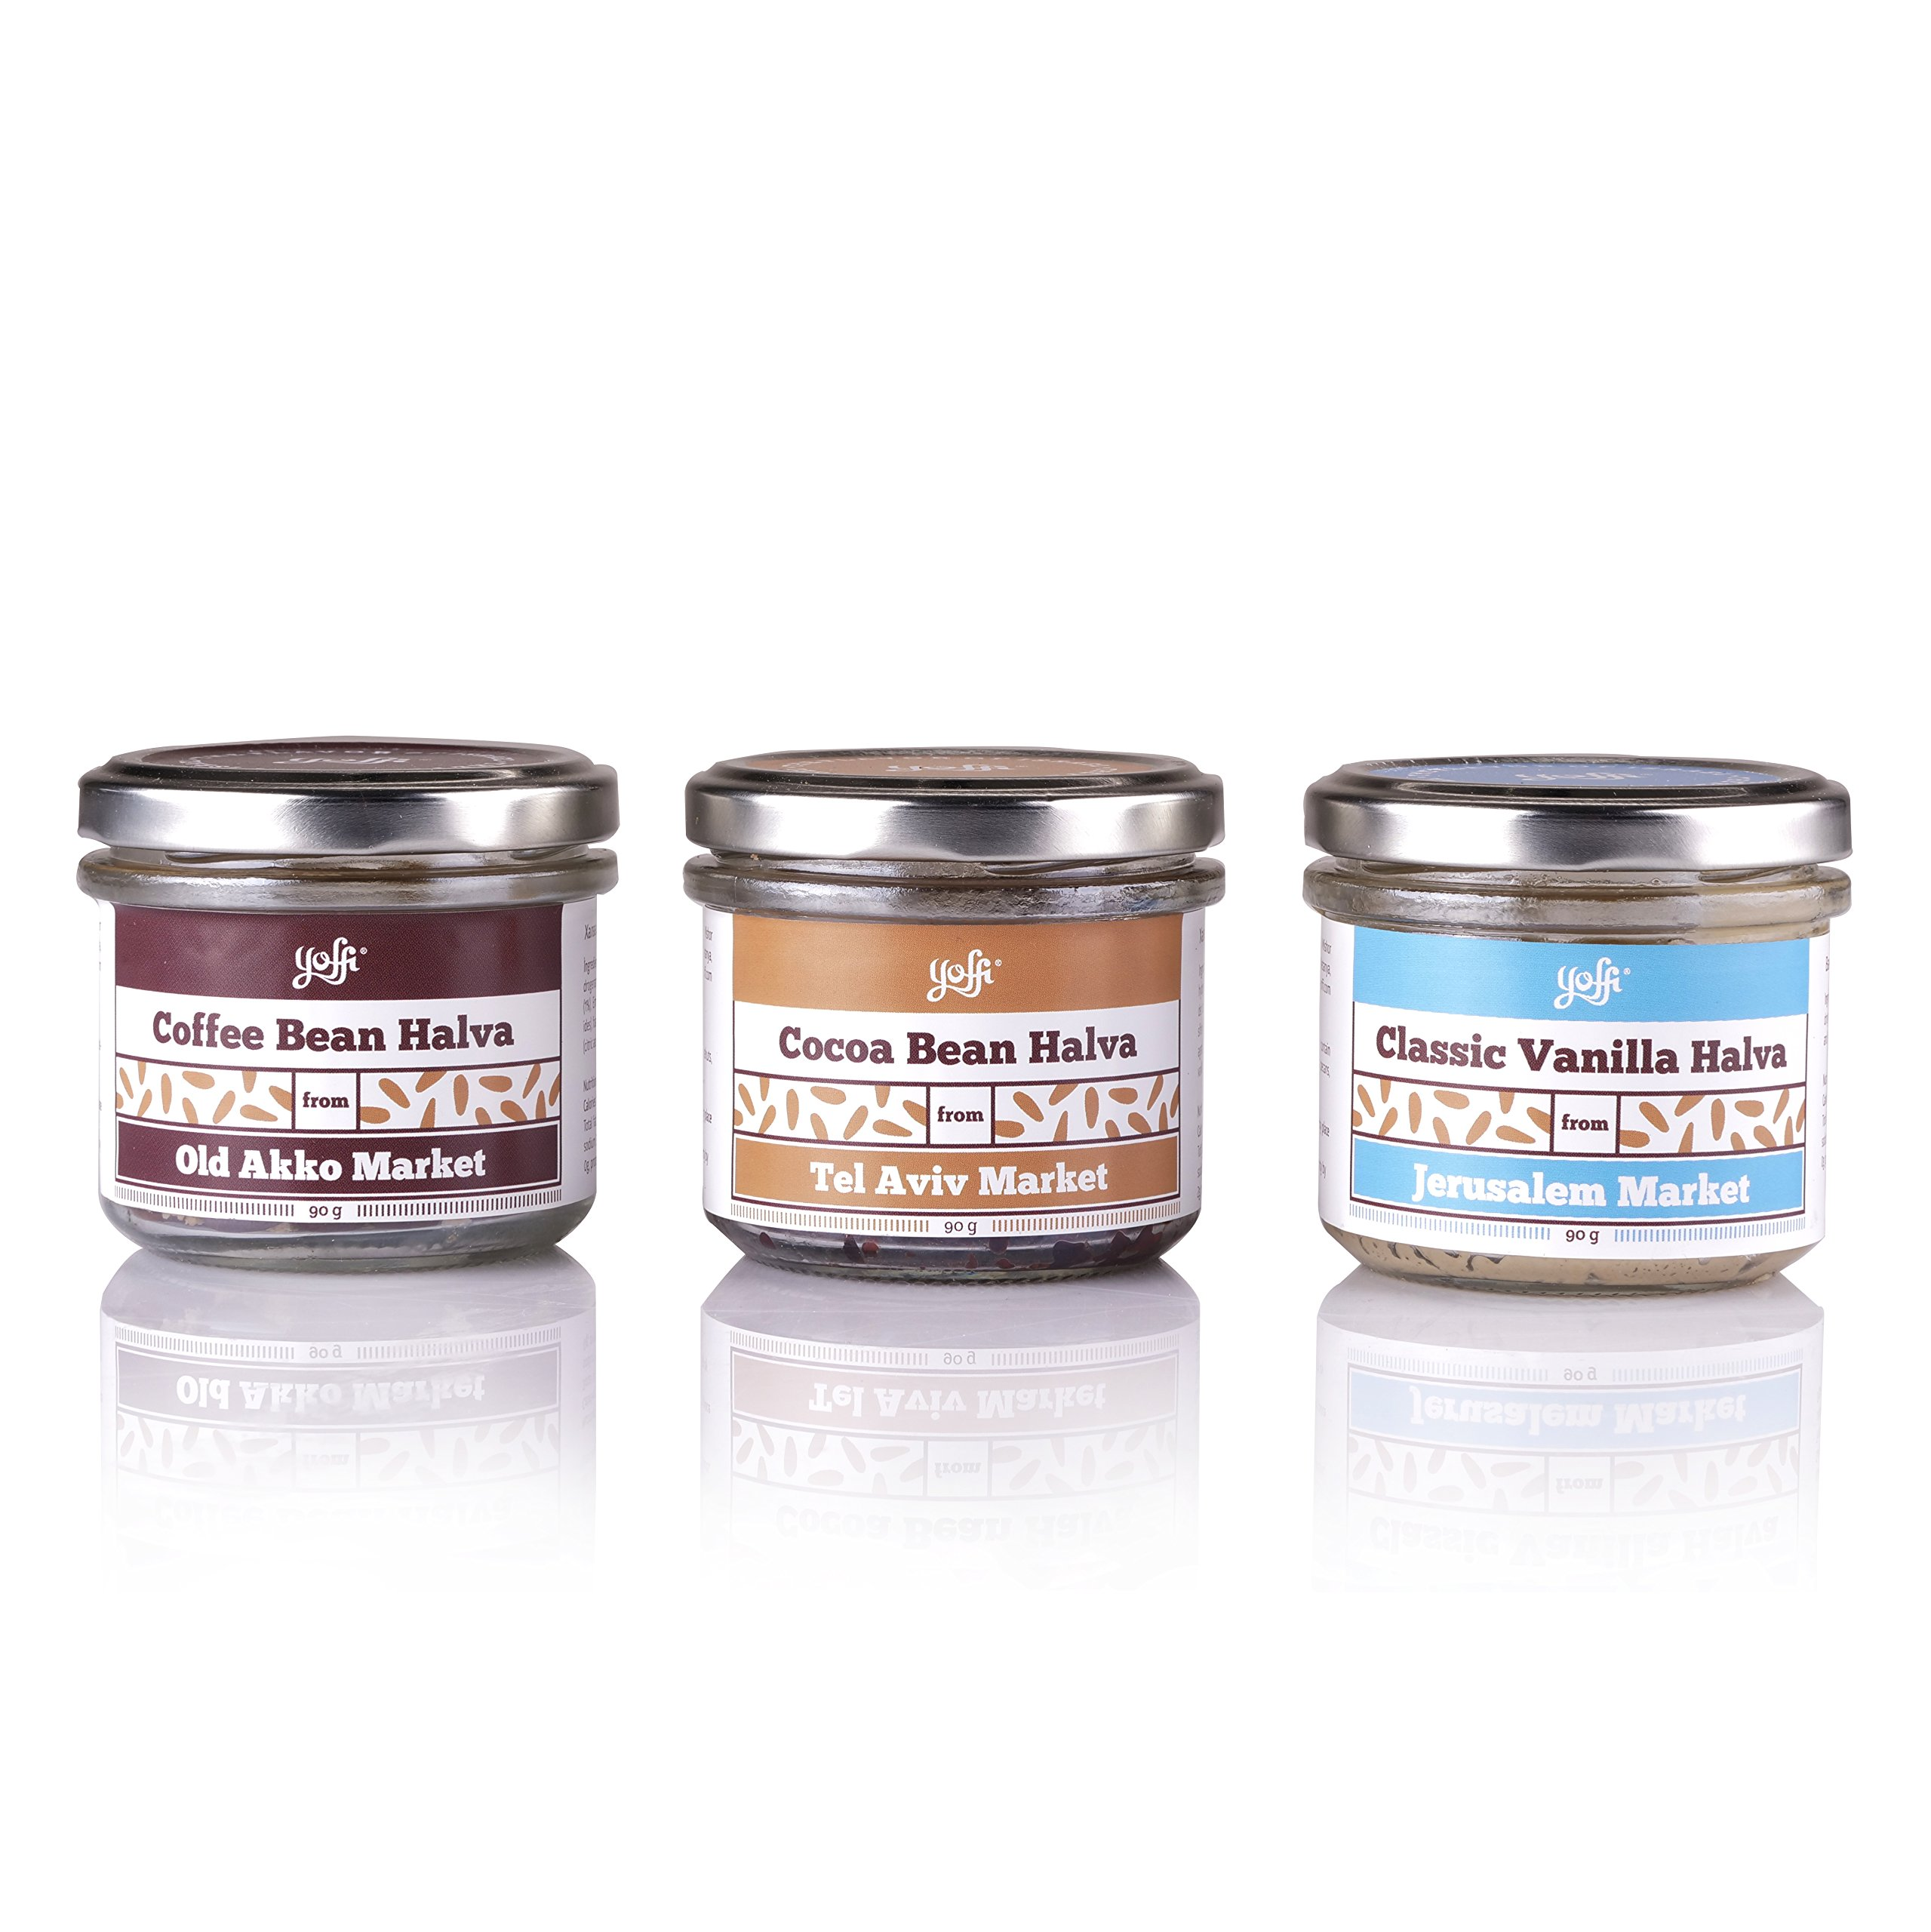 Yoffi Gift Set Natural Israeli Authentic Halva Spread, Premium Gourmet Set of 3 Delicious Flavors, Vegan Friendly Kosher Pareve by Yoffi